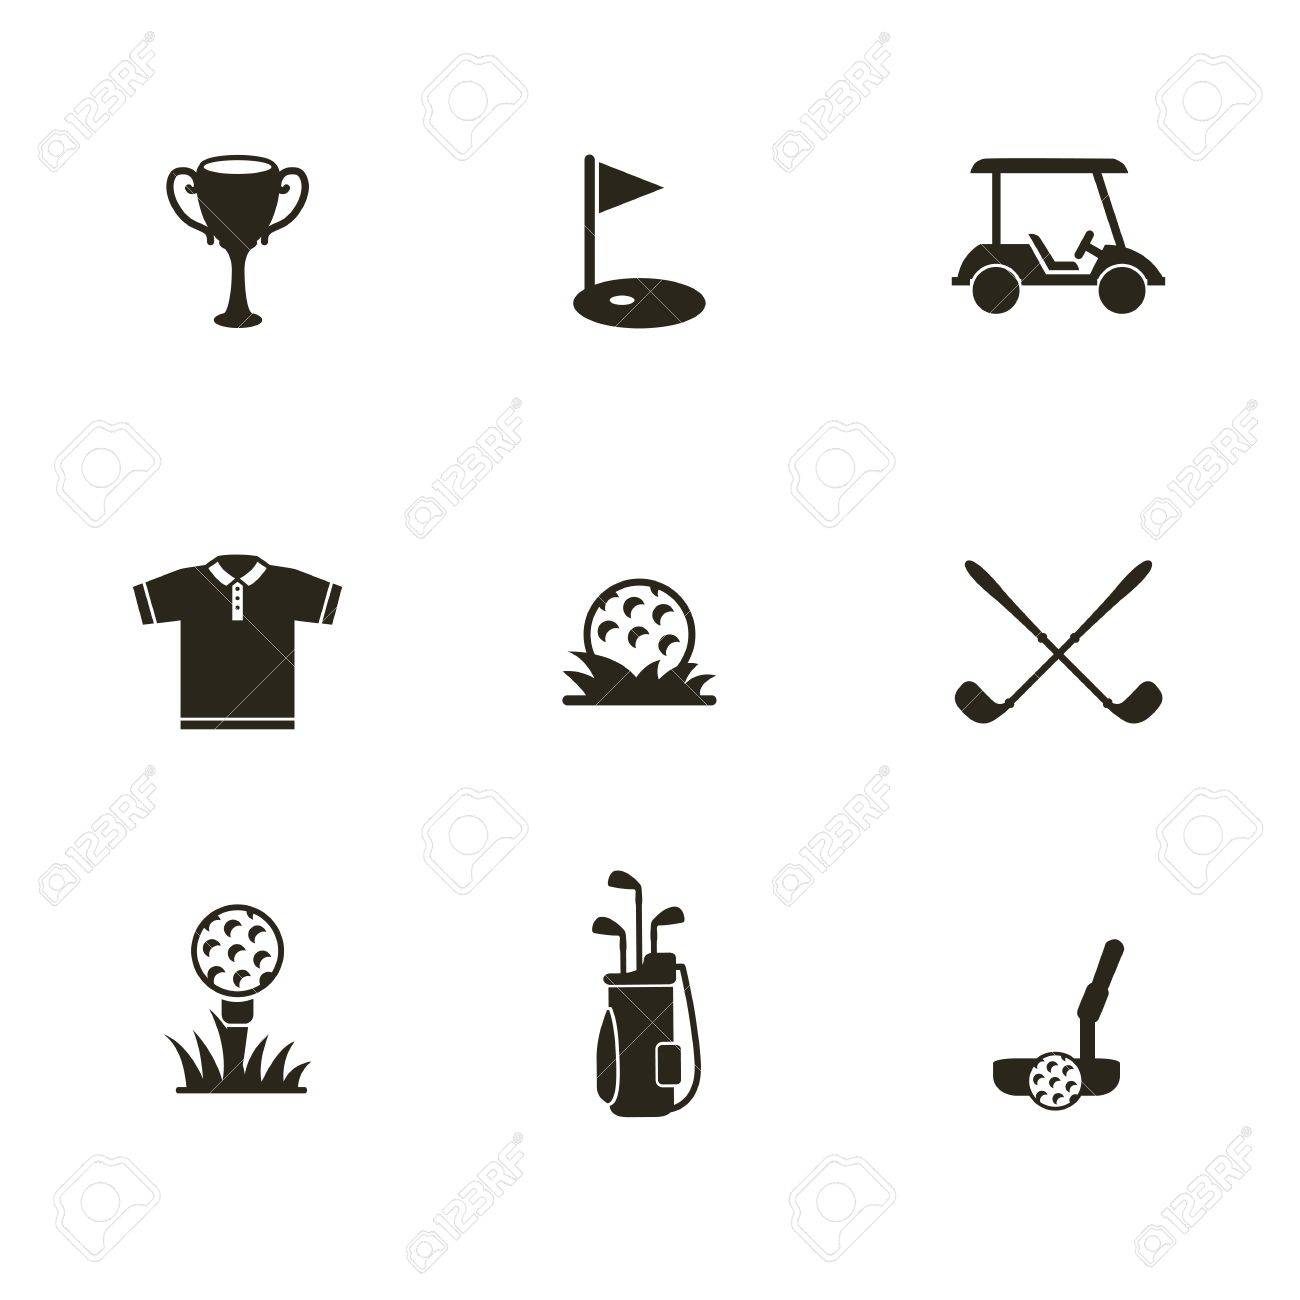 Icon of a golf ball and other attributes of the game. Black and white. - 44223019